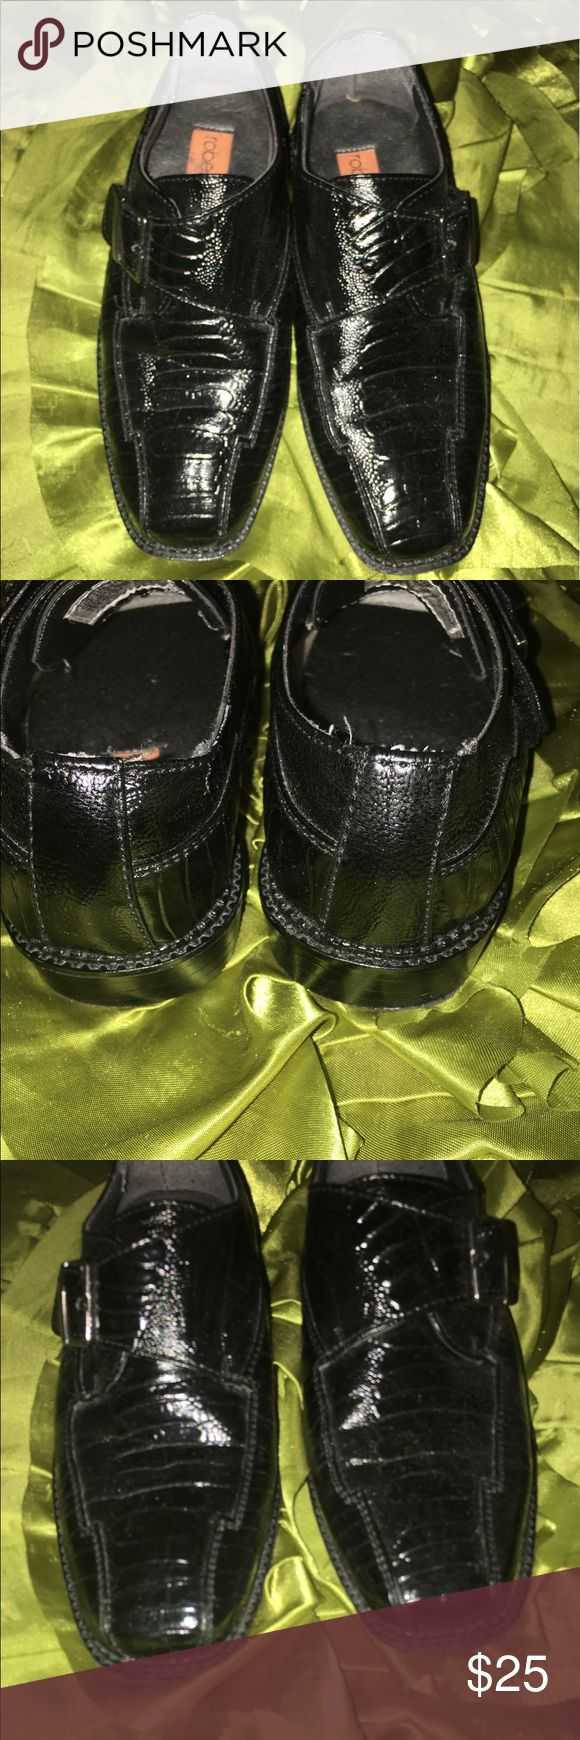 Robert David boys Dress Shoes sz 11 velcro closure Smoke free home and worn once when we forgot his normal shoes on an out of town visit. VVGUC velcro closure, easy on and easy off. Robert David Shoes Dress Shoes